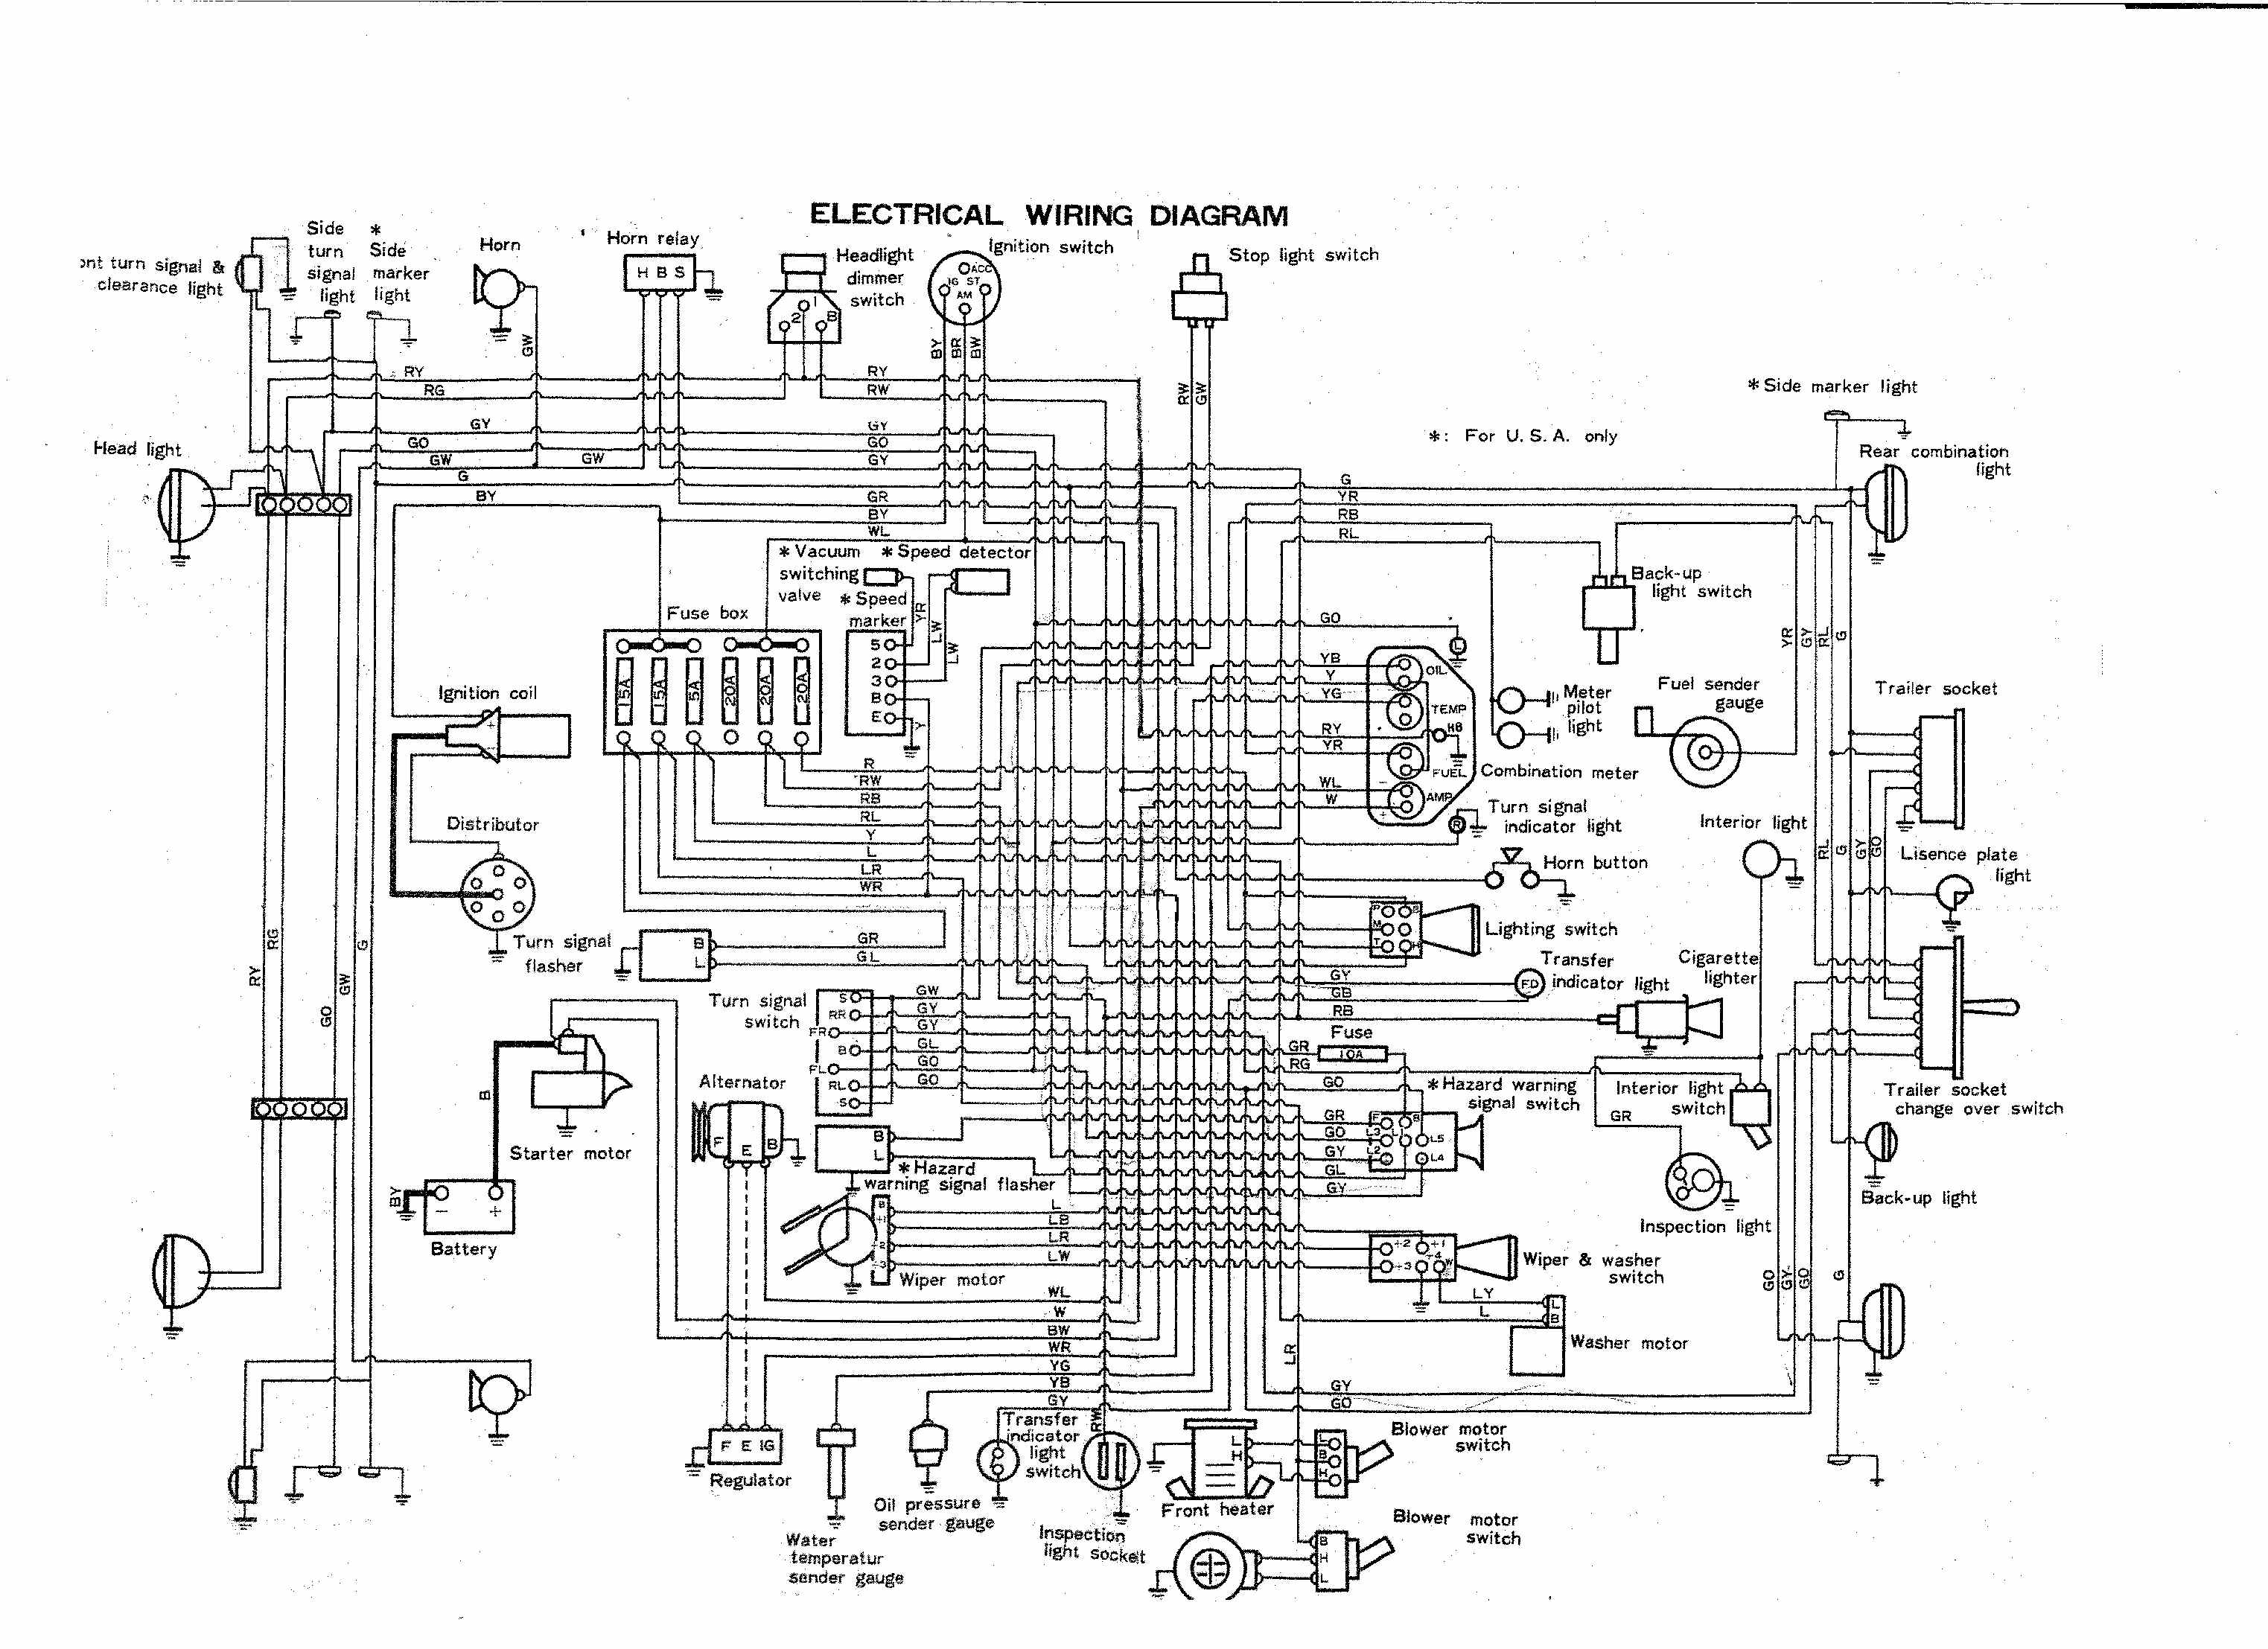 1970 FJ40 fj40 wiring diagram fj40 dash diagram \u2022 wiring diagrams j squared co 1984 fj40 fuse box diagram at reclaimingppi.co